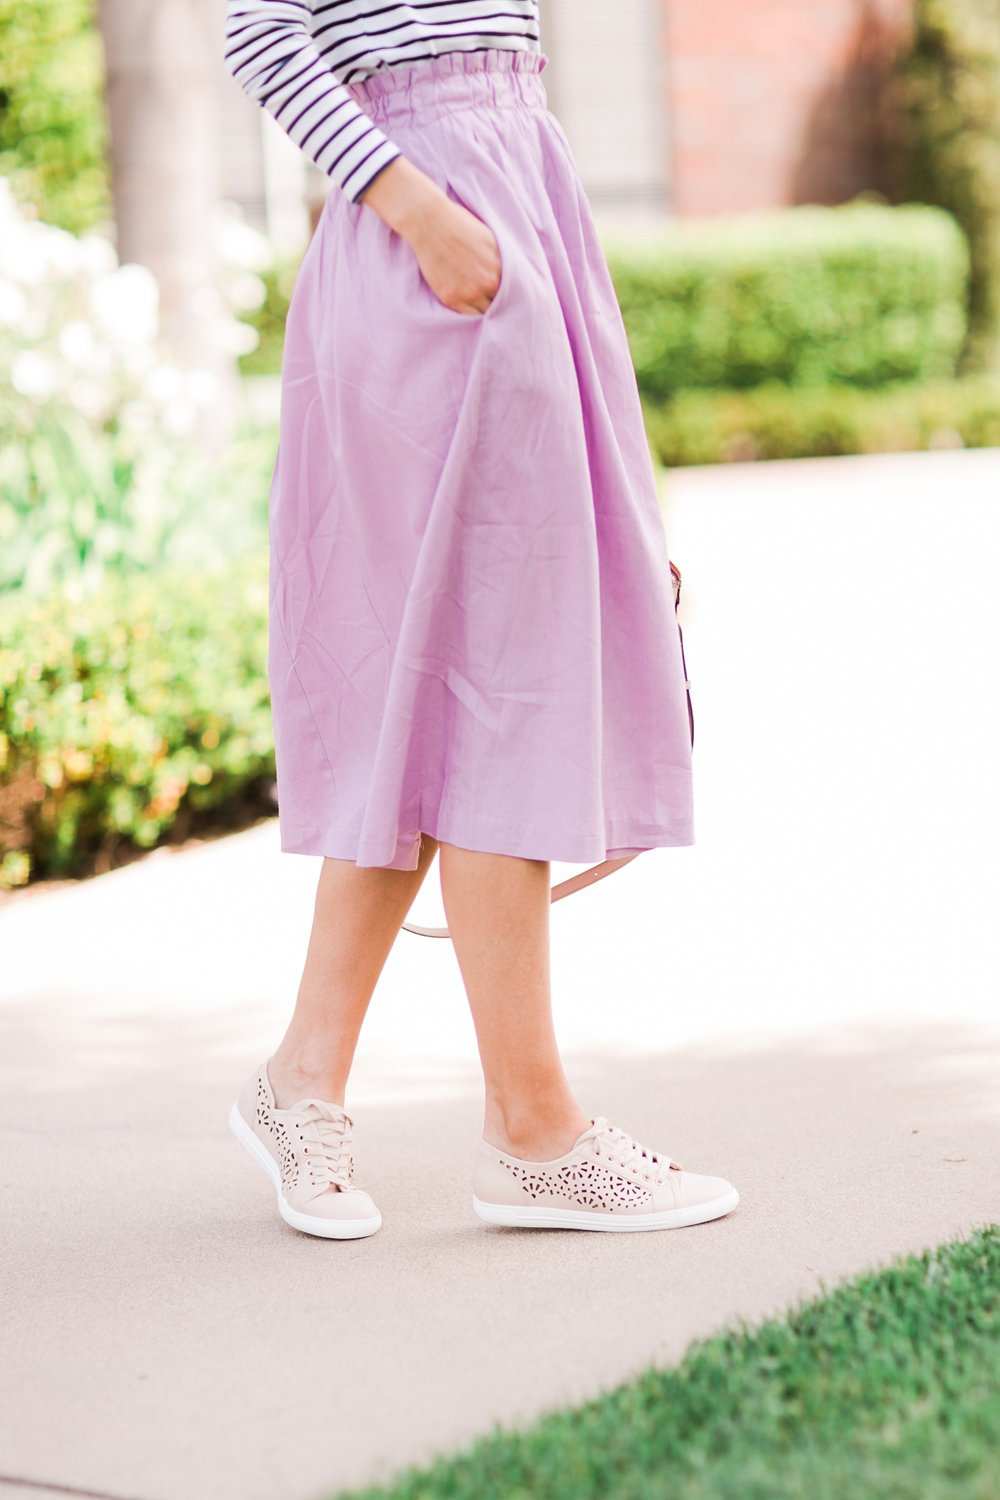 Merrick's Art Lilac Skirt and Blush Sneakers